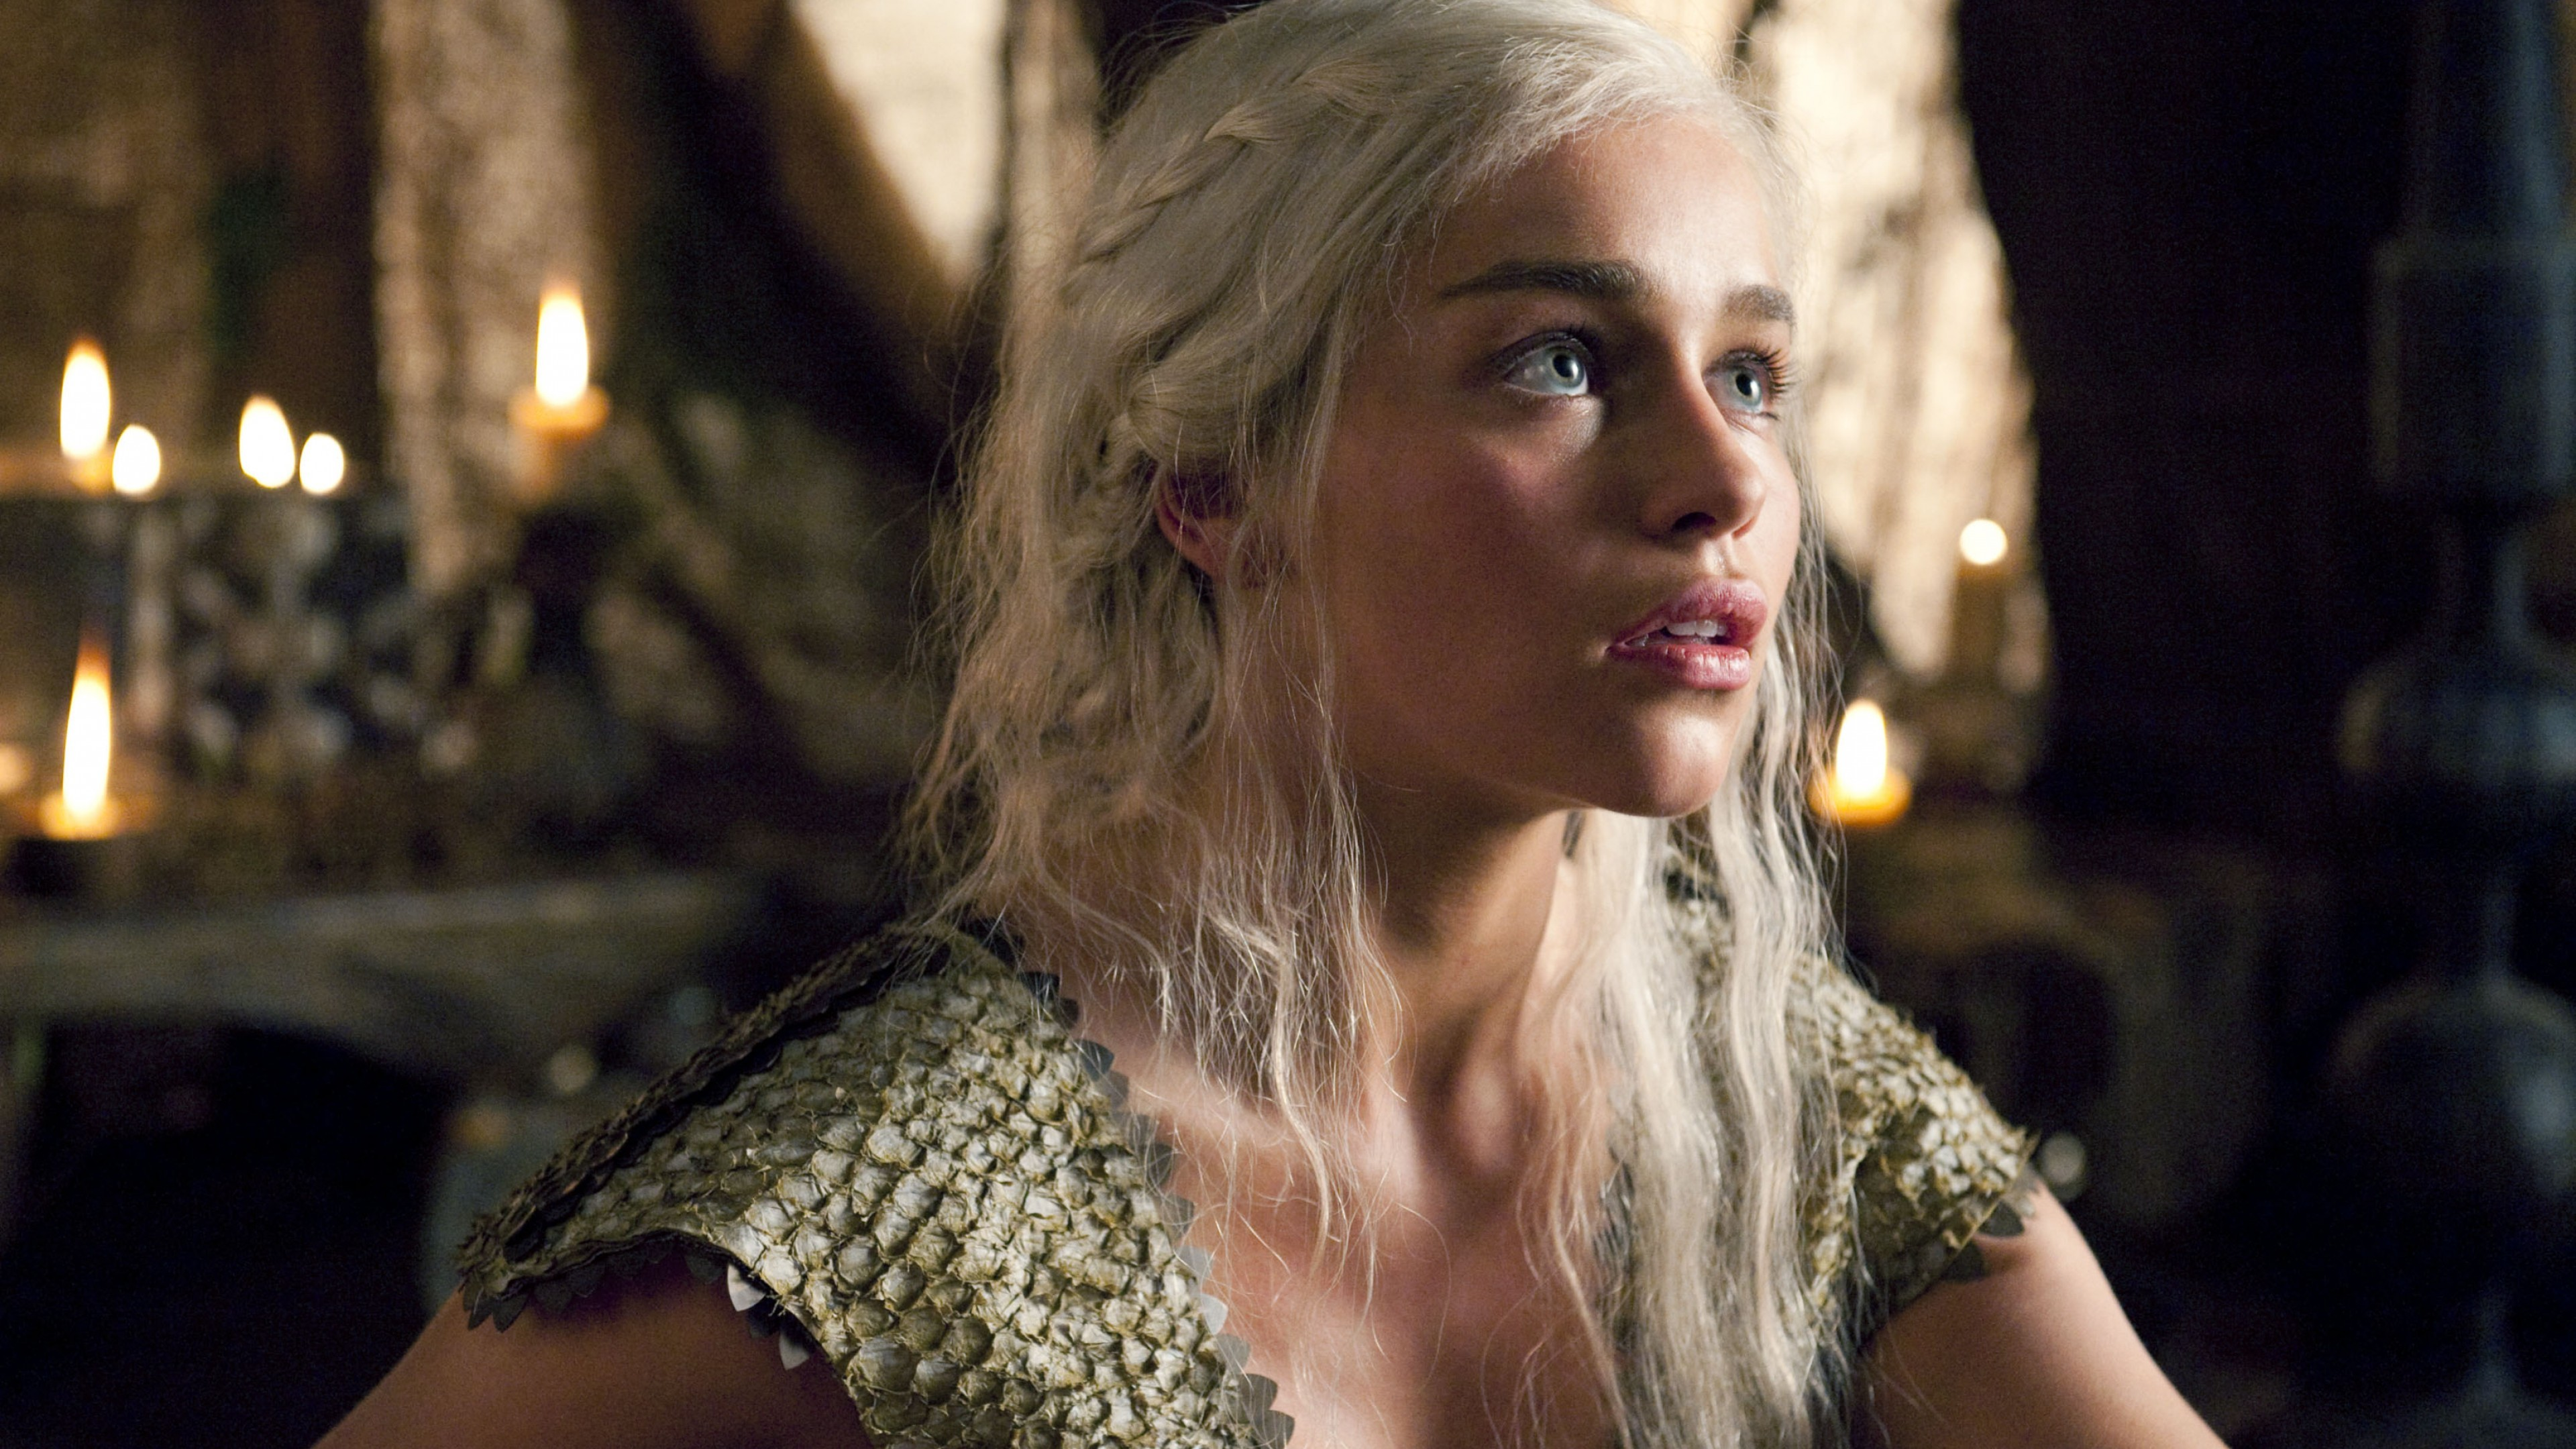 Emilia Clarke Game of Thrones Wallpapers 71 images 3840x2160